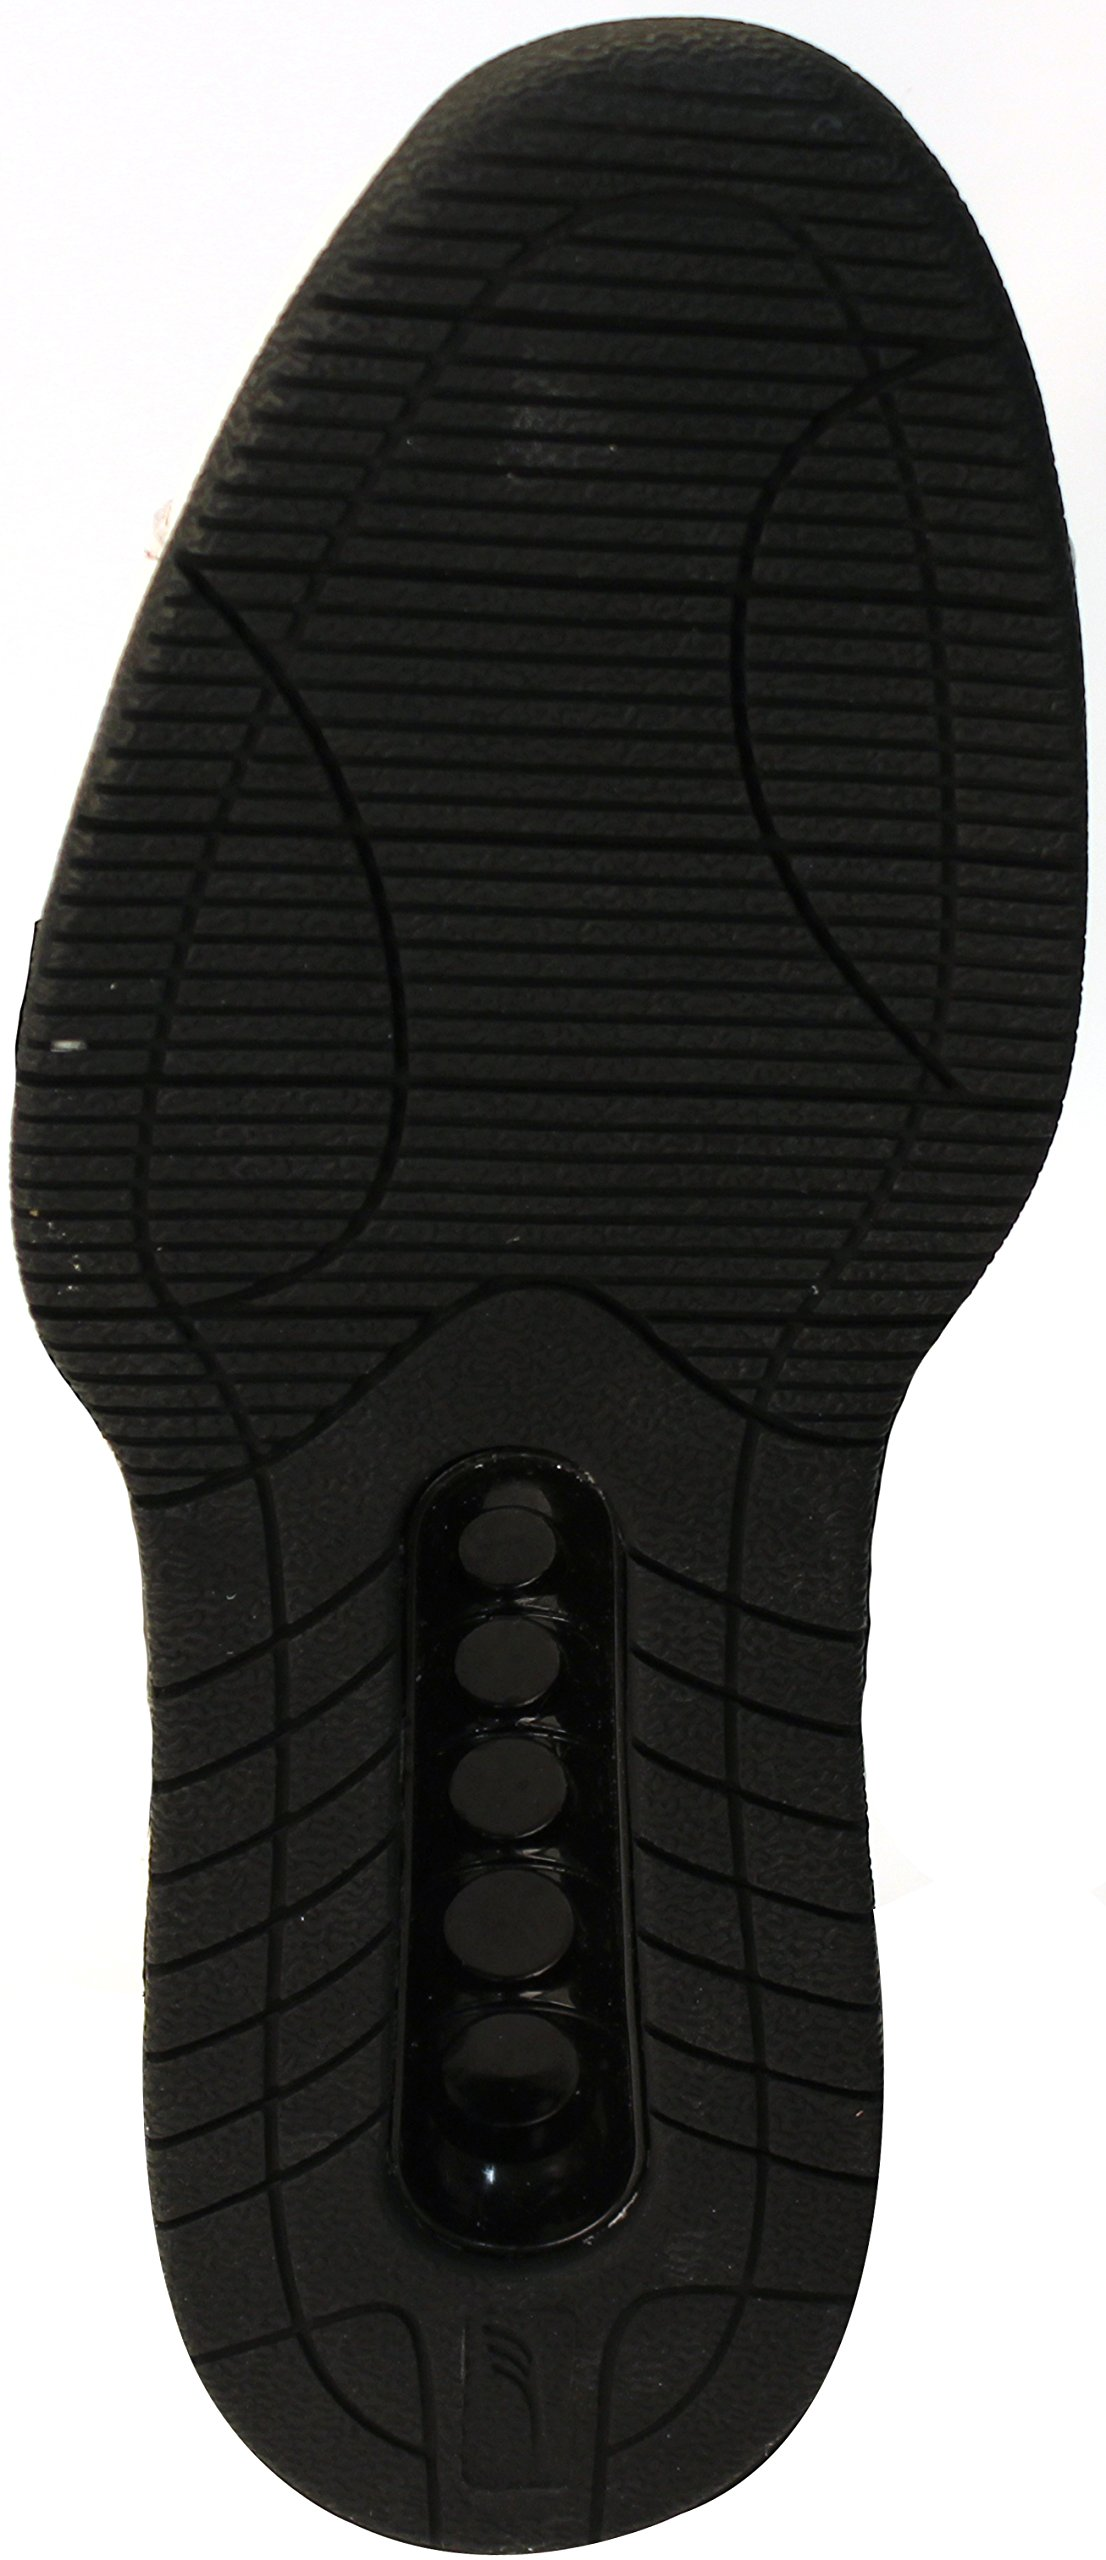 Pendlay Men's 13PGRAY - Weightlifting Shoes 14.5 M by Pendlay